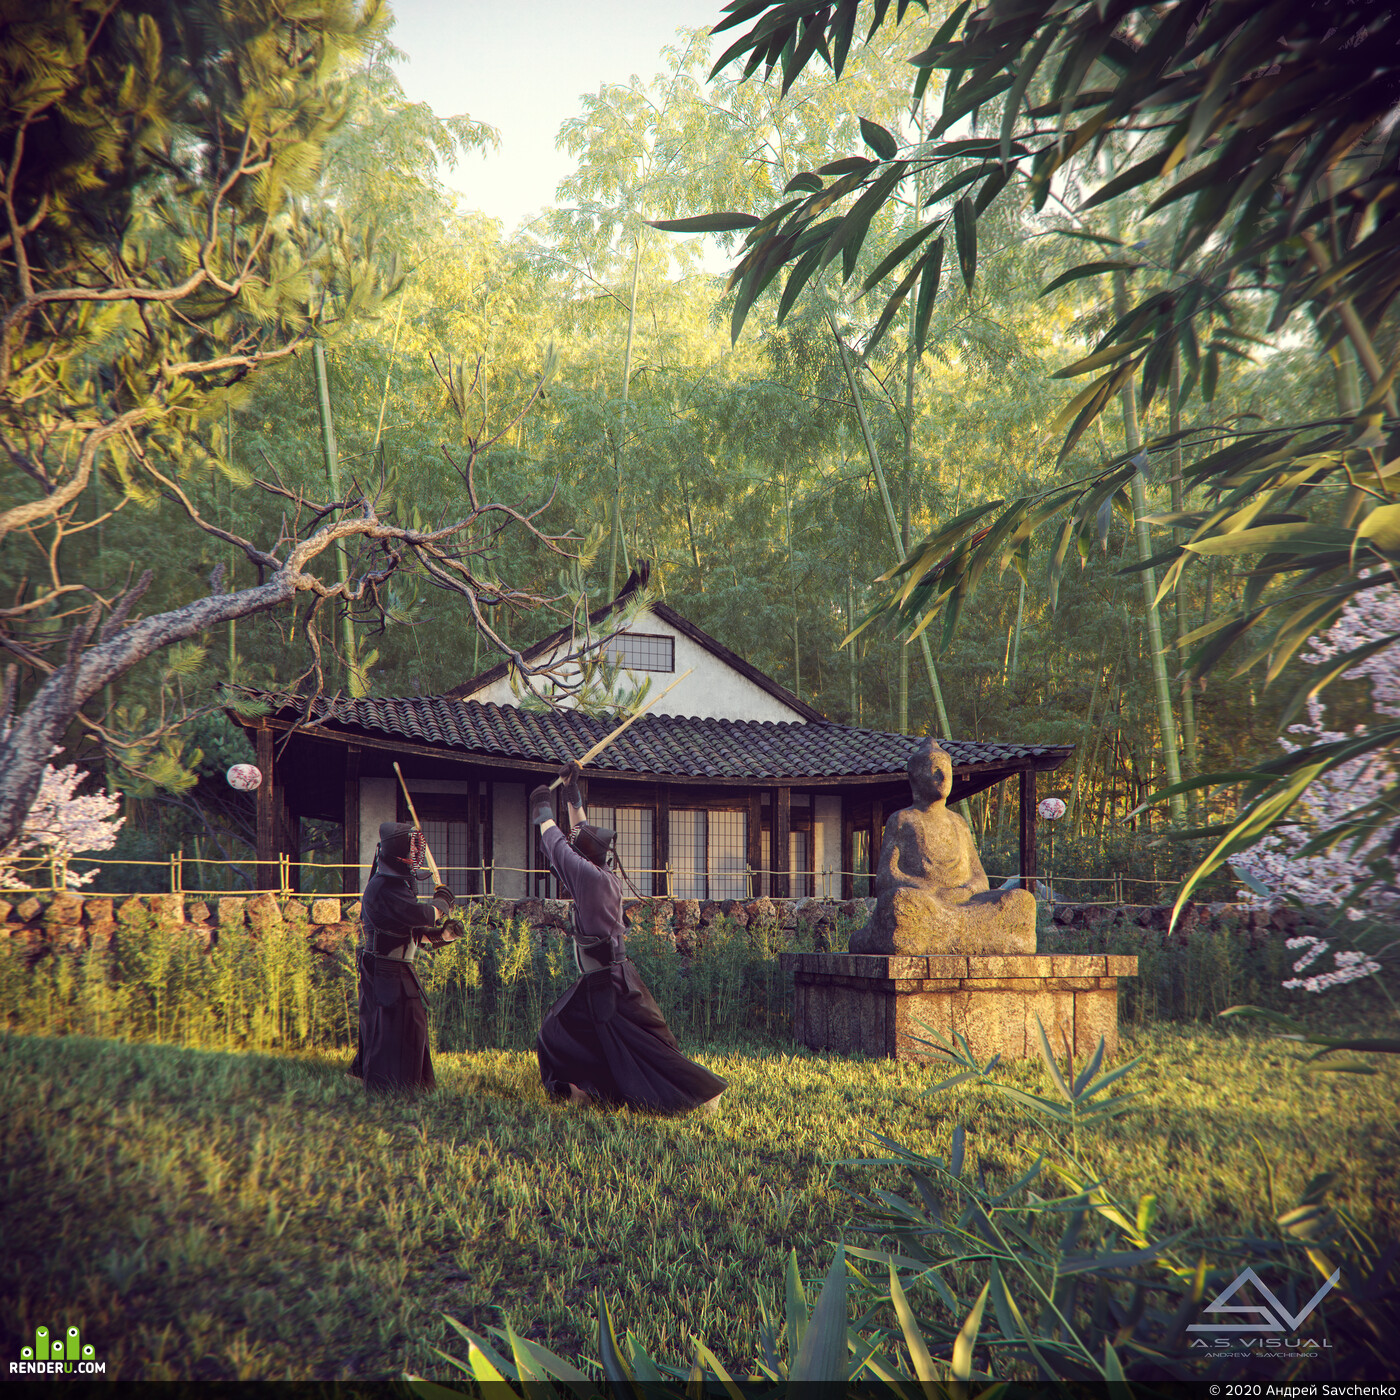 old house, forest, house in the forest, samurai, japanice, dusk